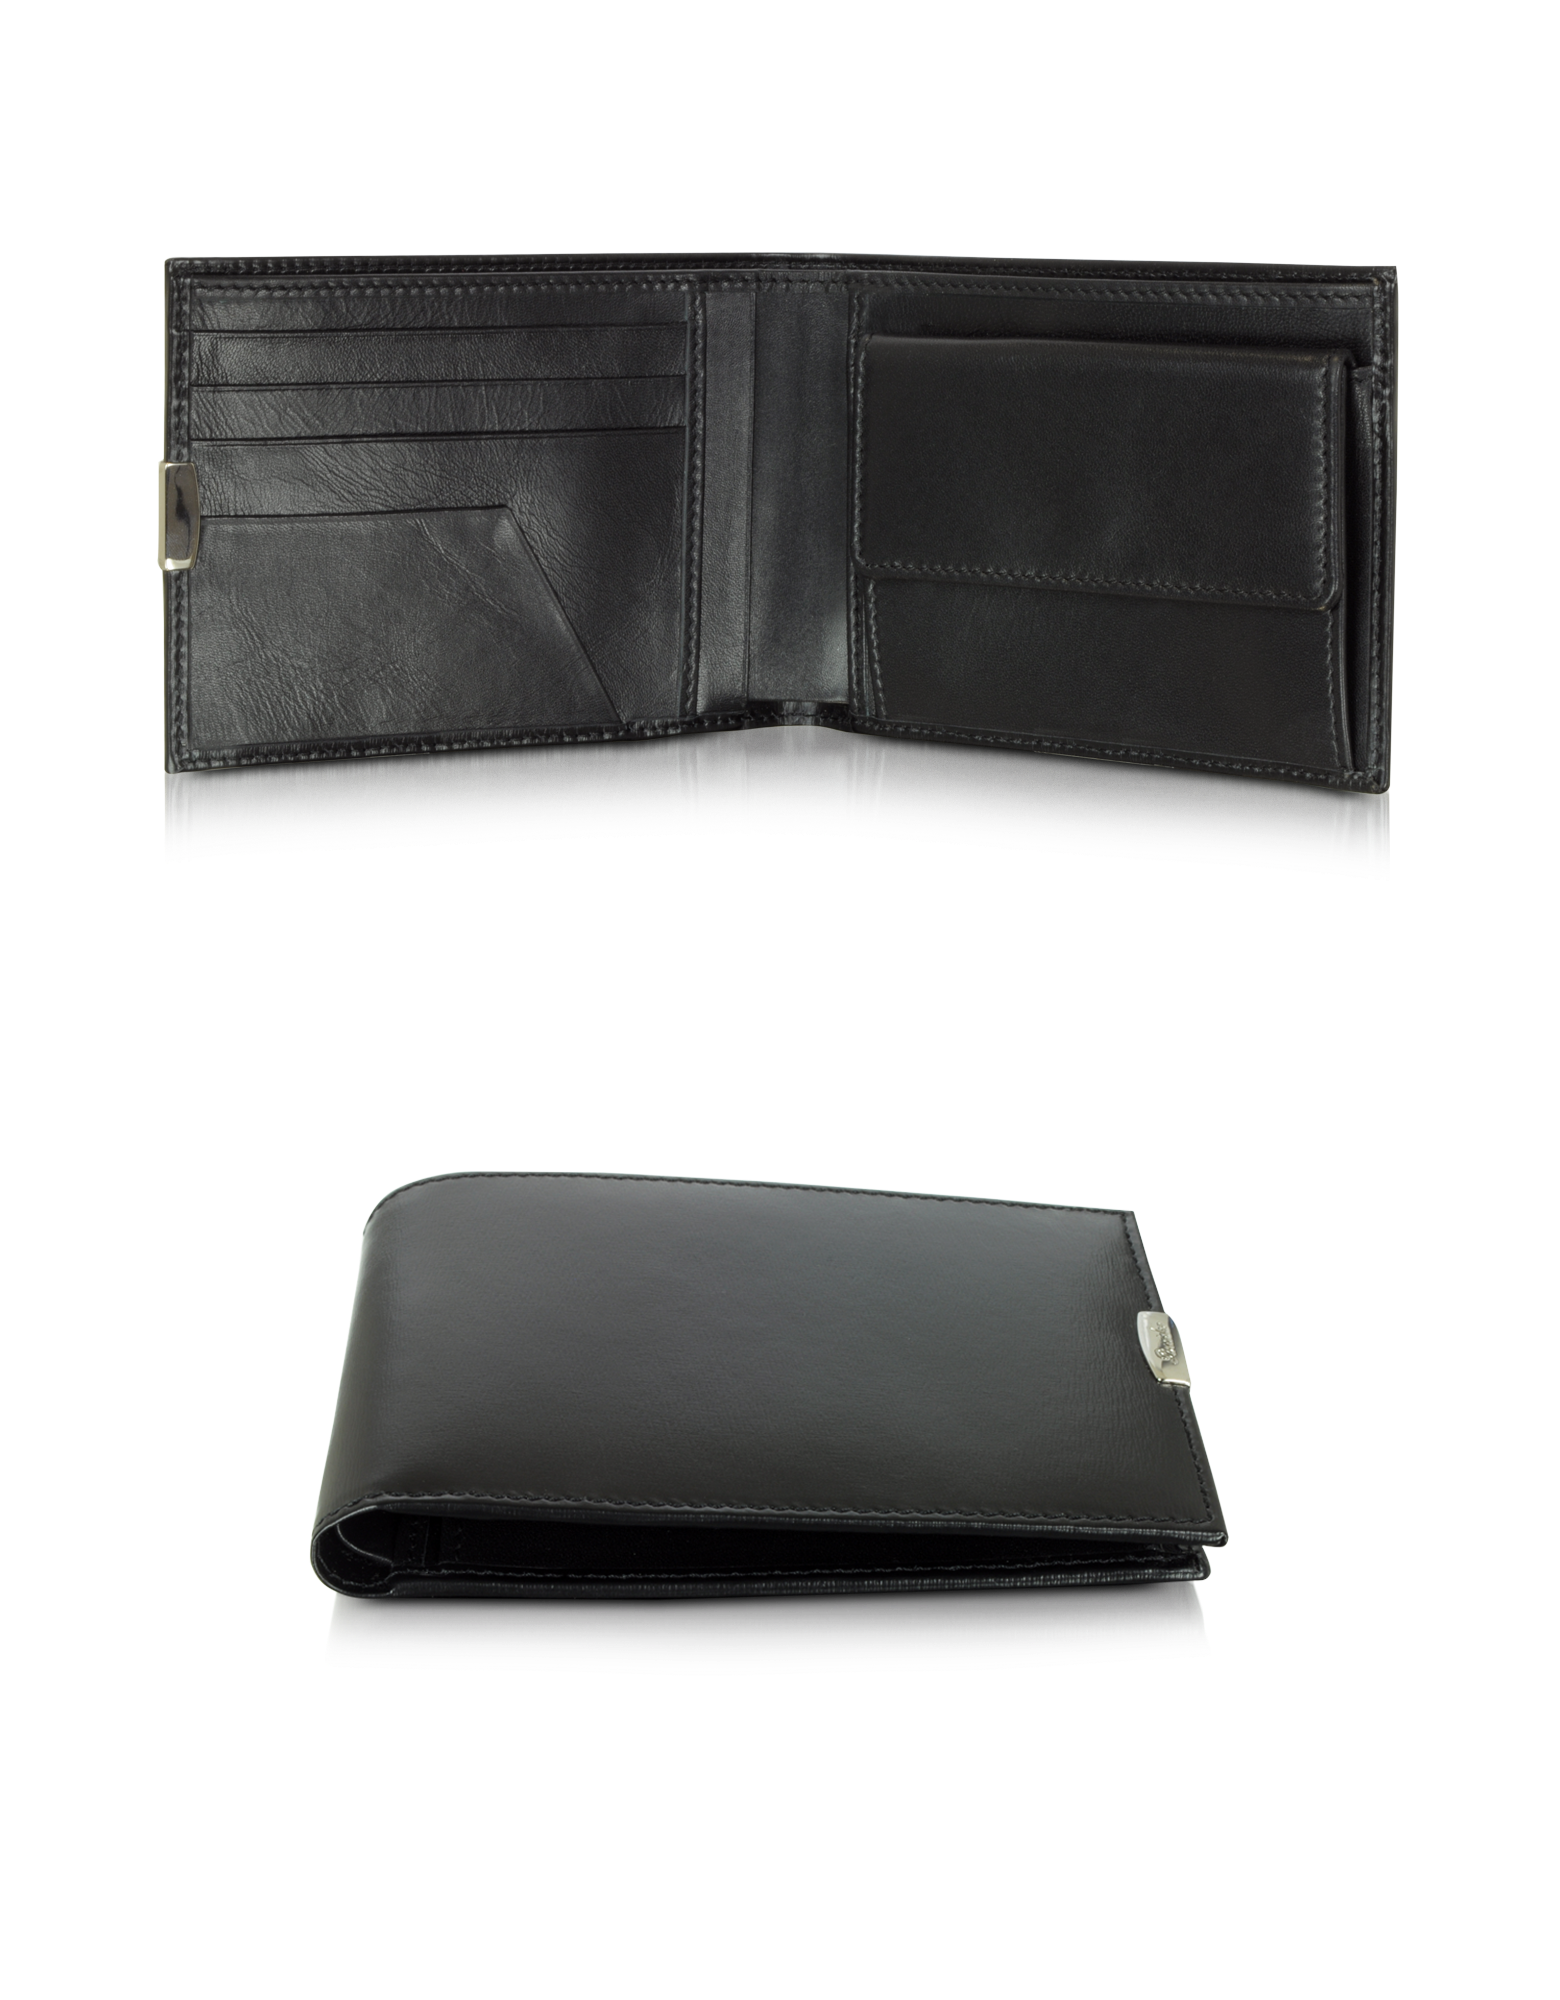 Image of 1949 Black Leather Men's Wallet W/Coin Pocket